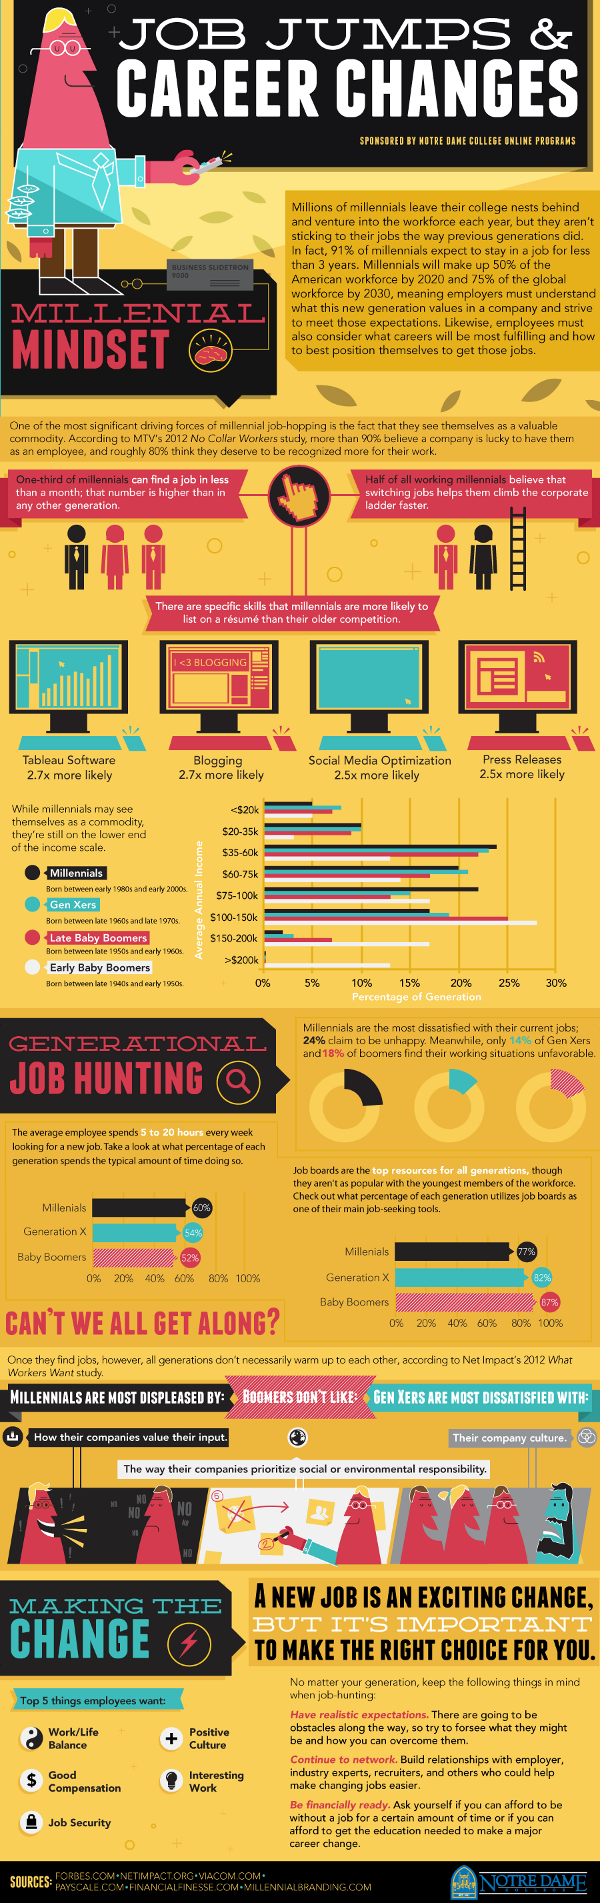 job jumps and career changes #infographic